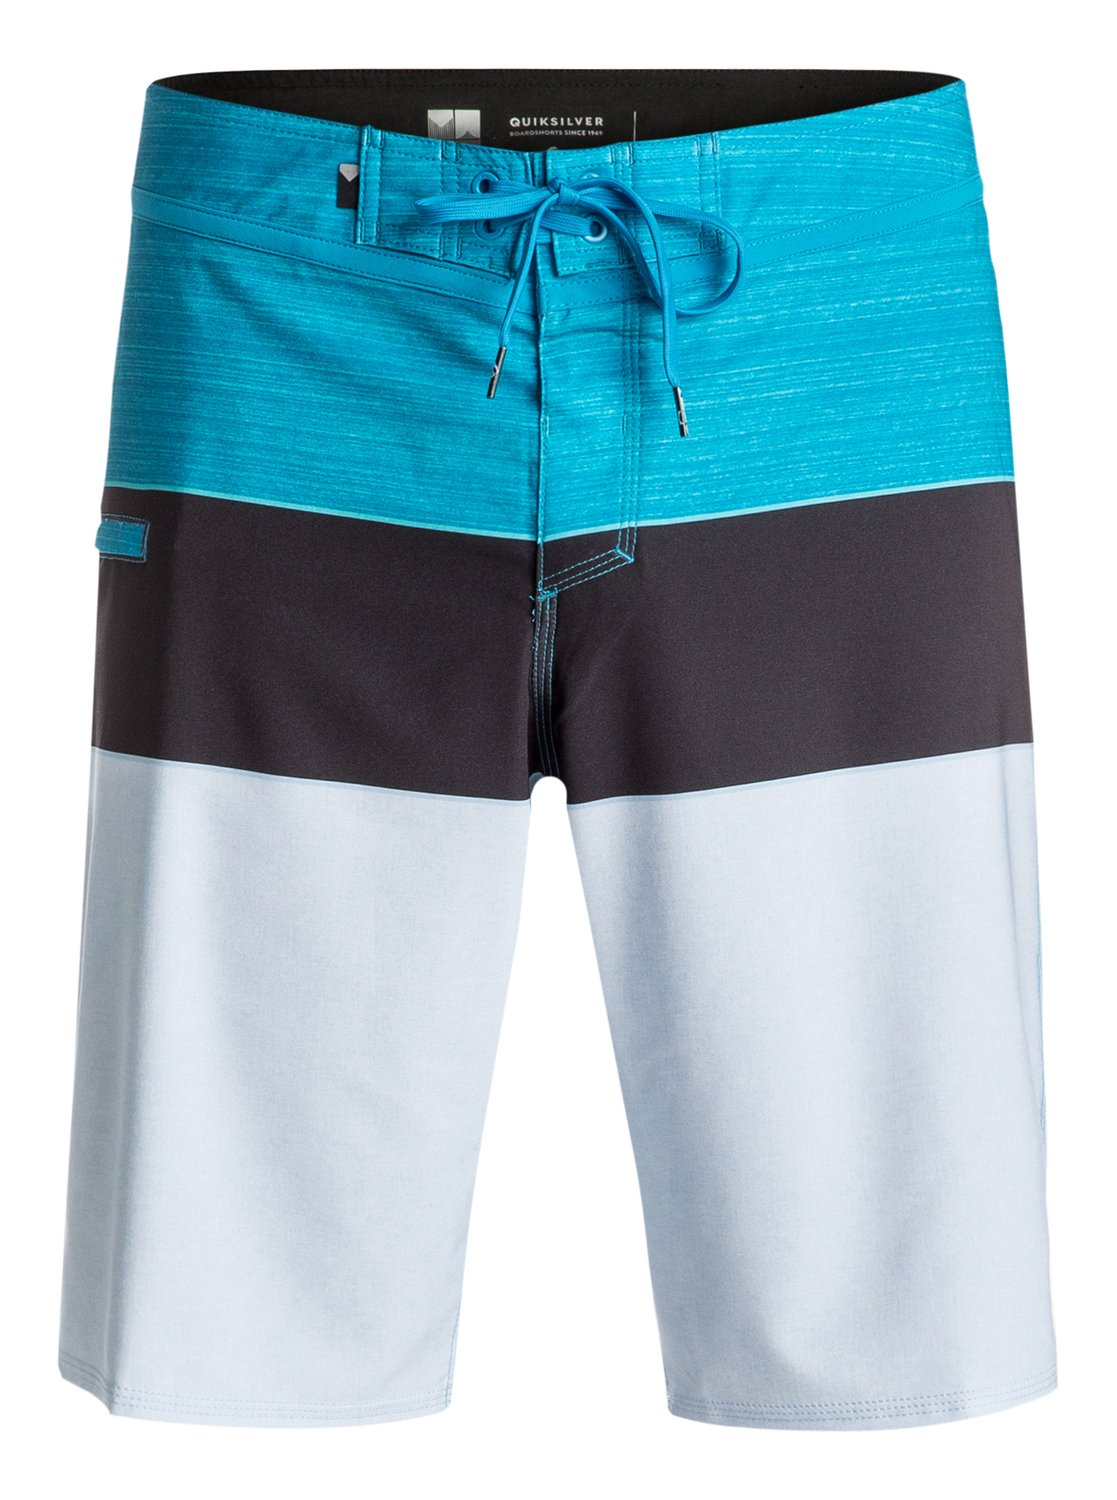 Shop men's and women's boardshorts at launch Cable Park